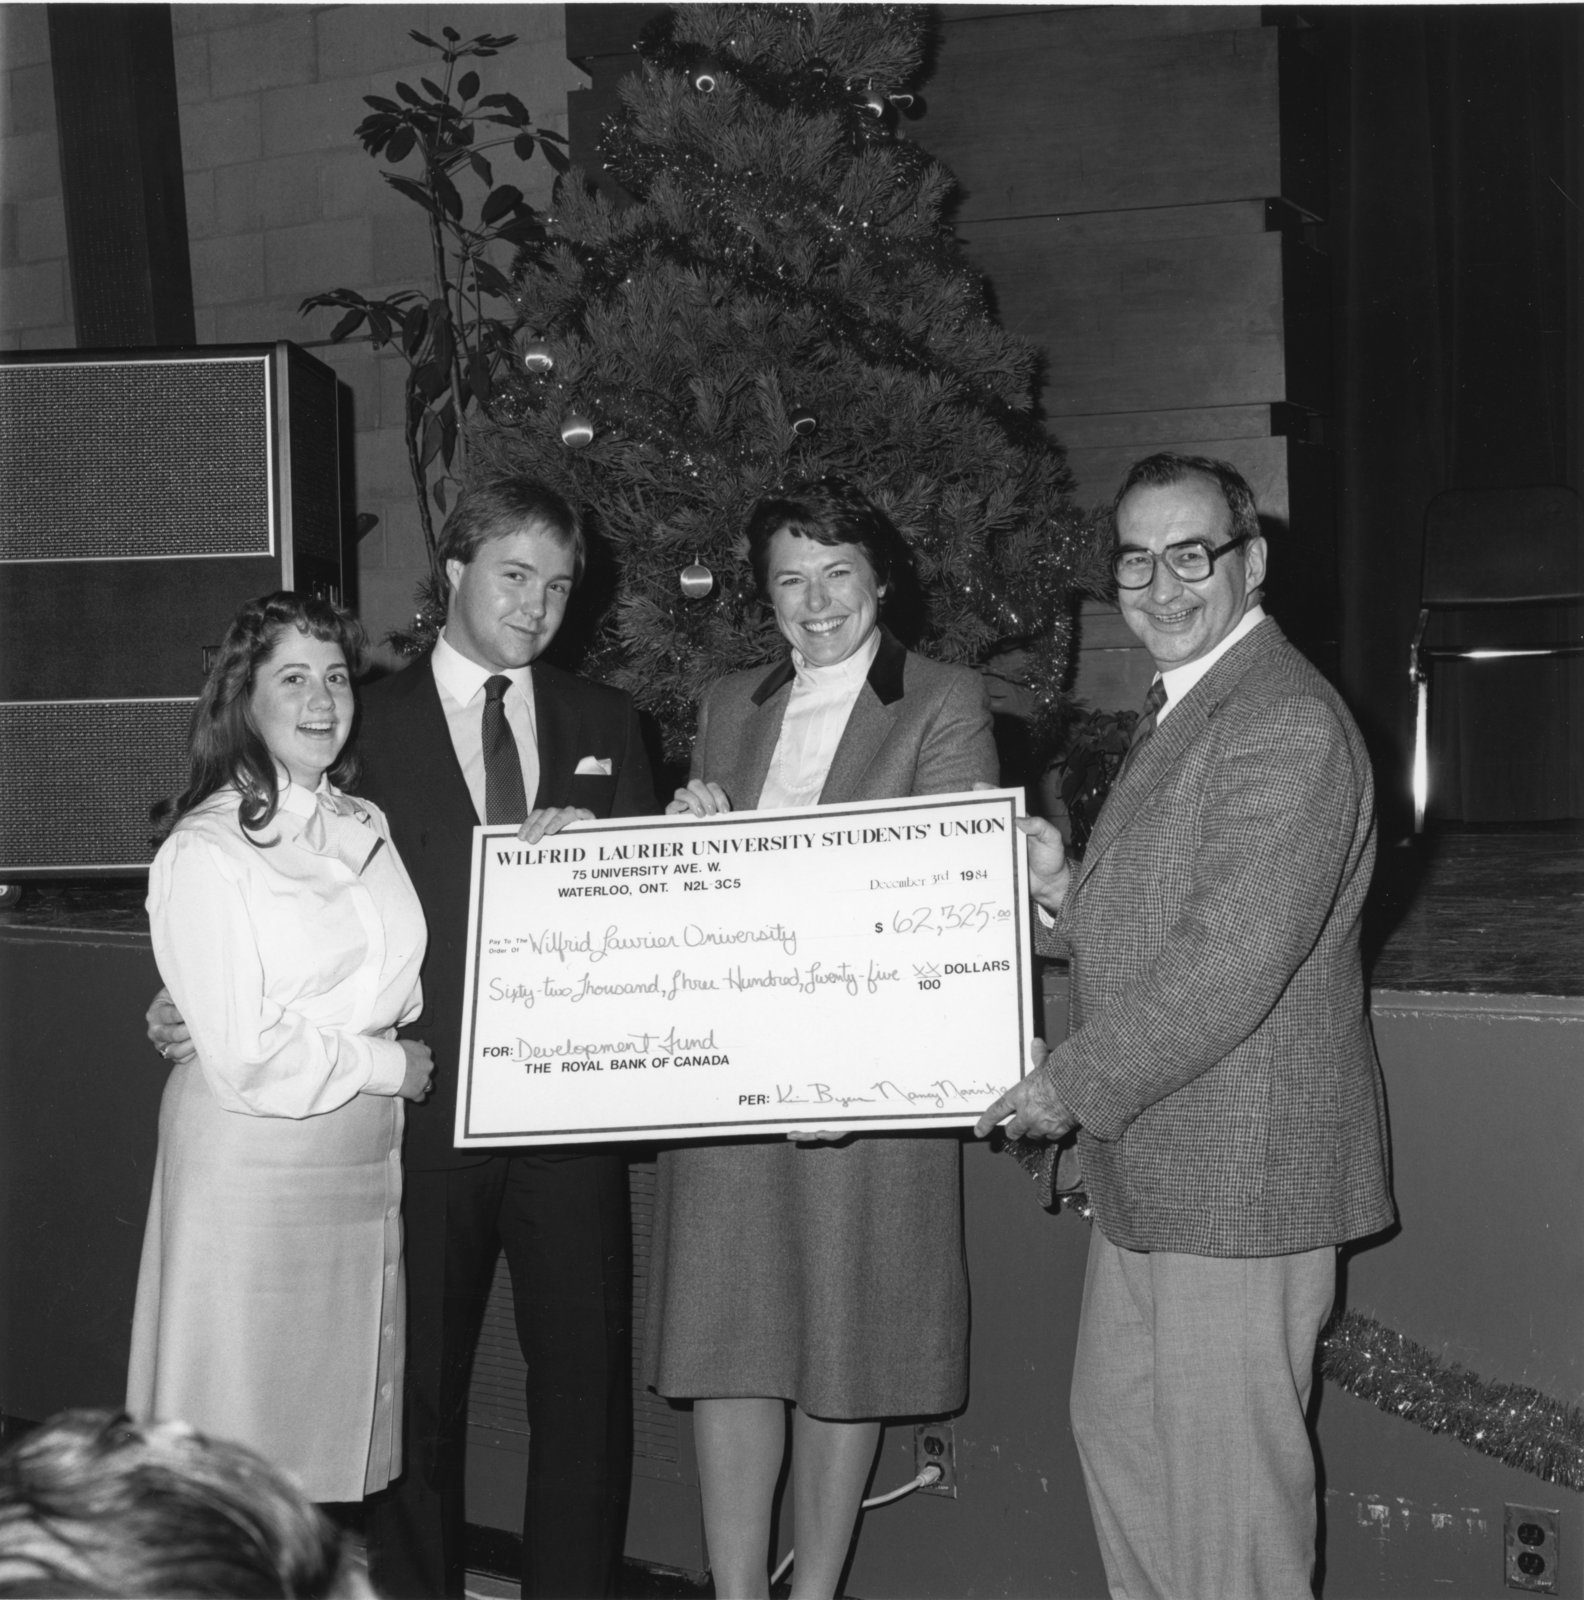 John Weir and Marge Millar accepting a cheque from WLUSU